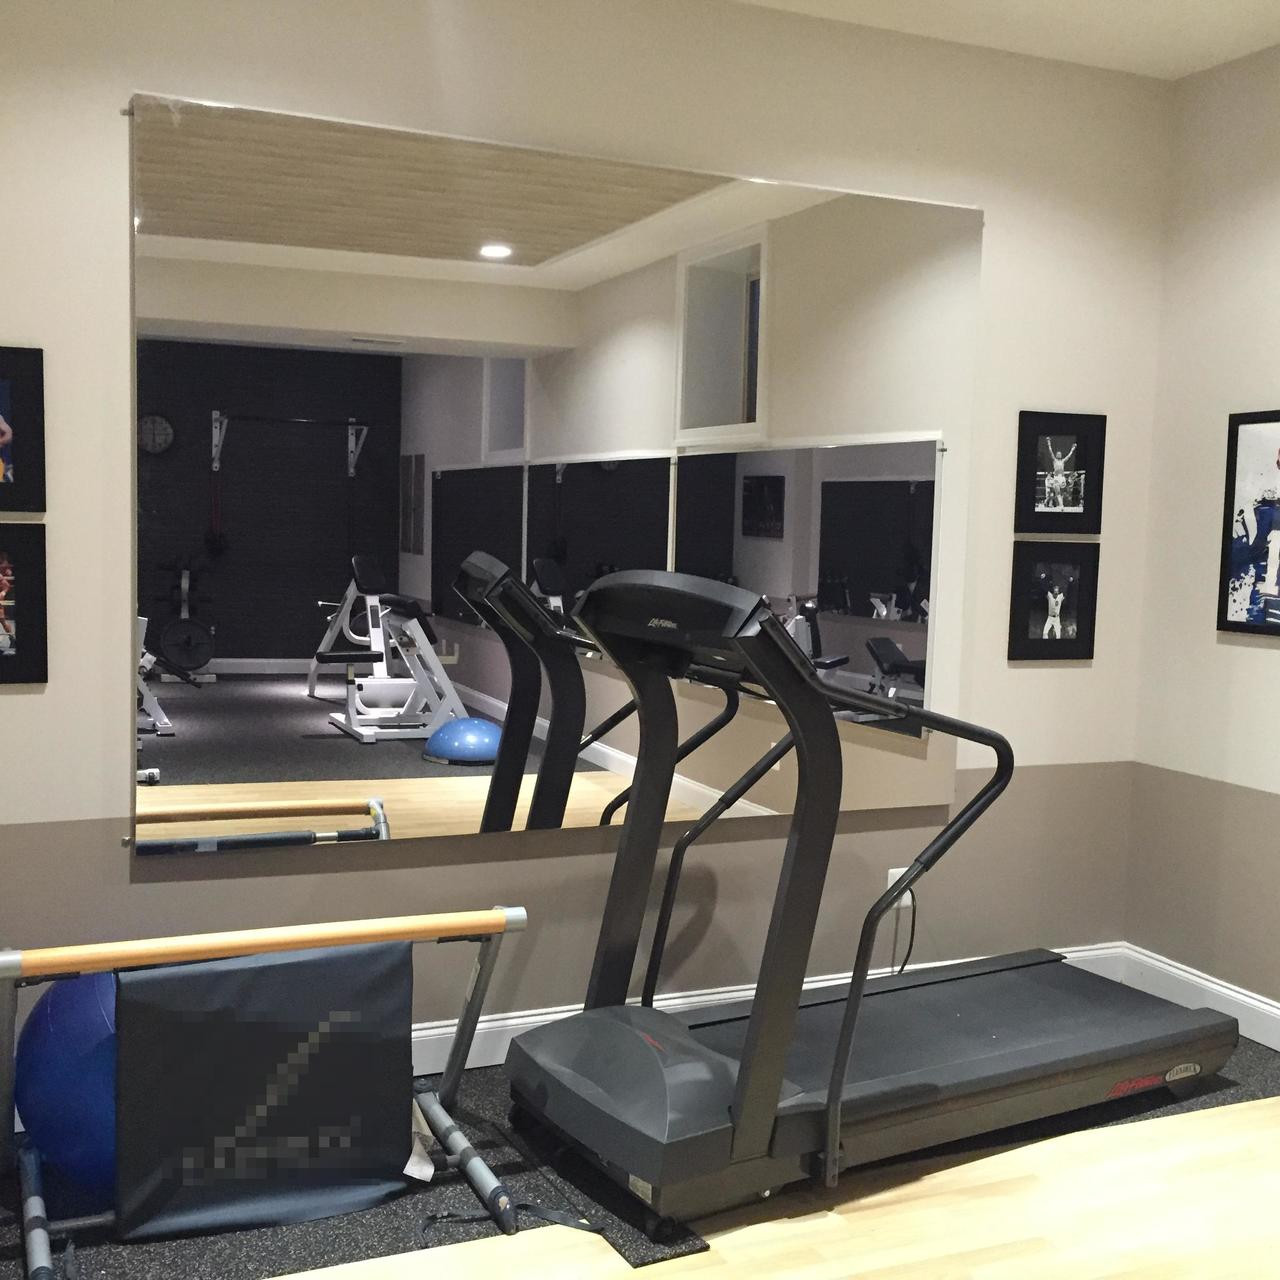 Peachy Glassless Gym Wall Mirrors Download Free Architecture Designs Rallybritishbridgeorg